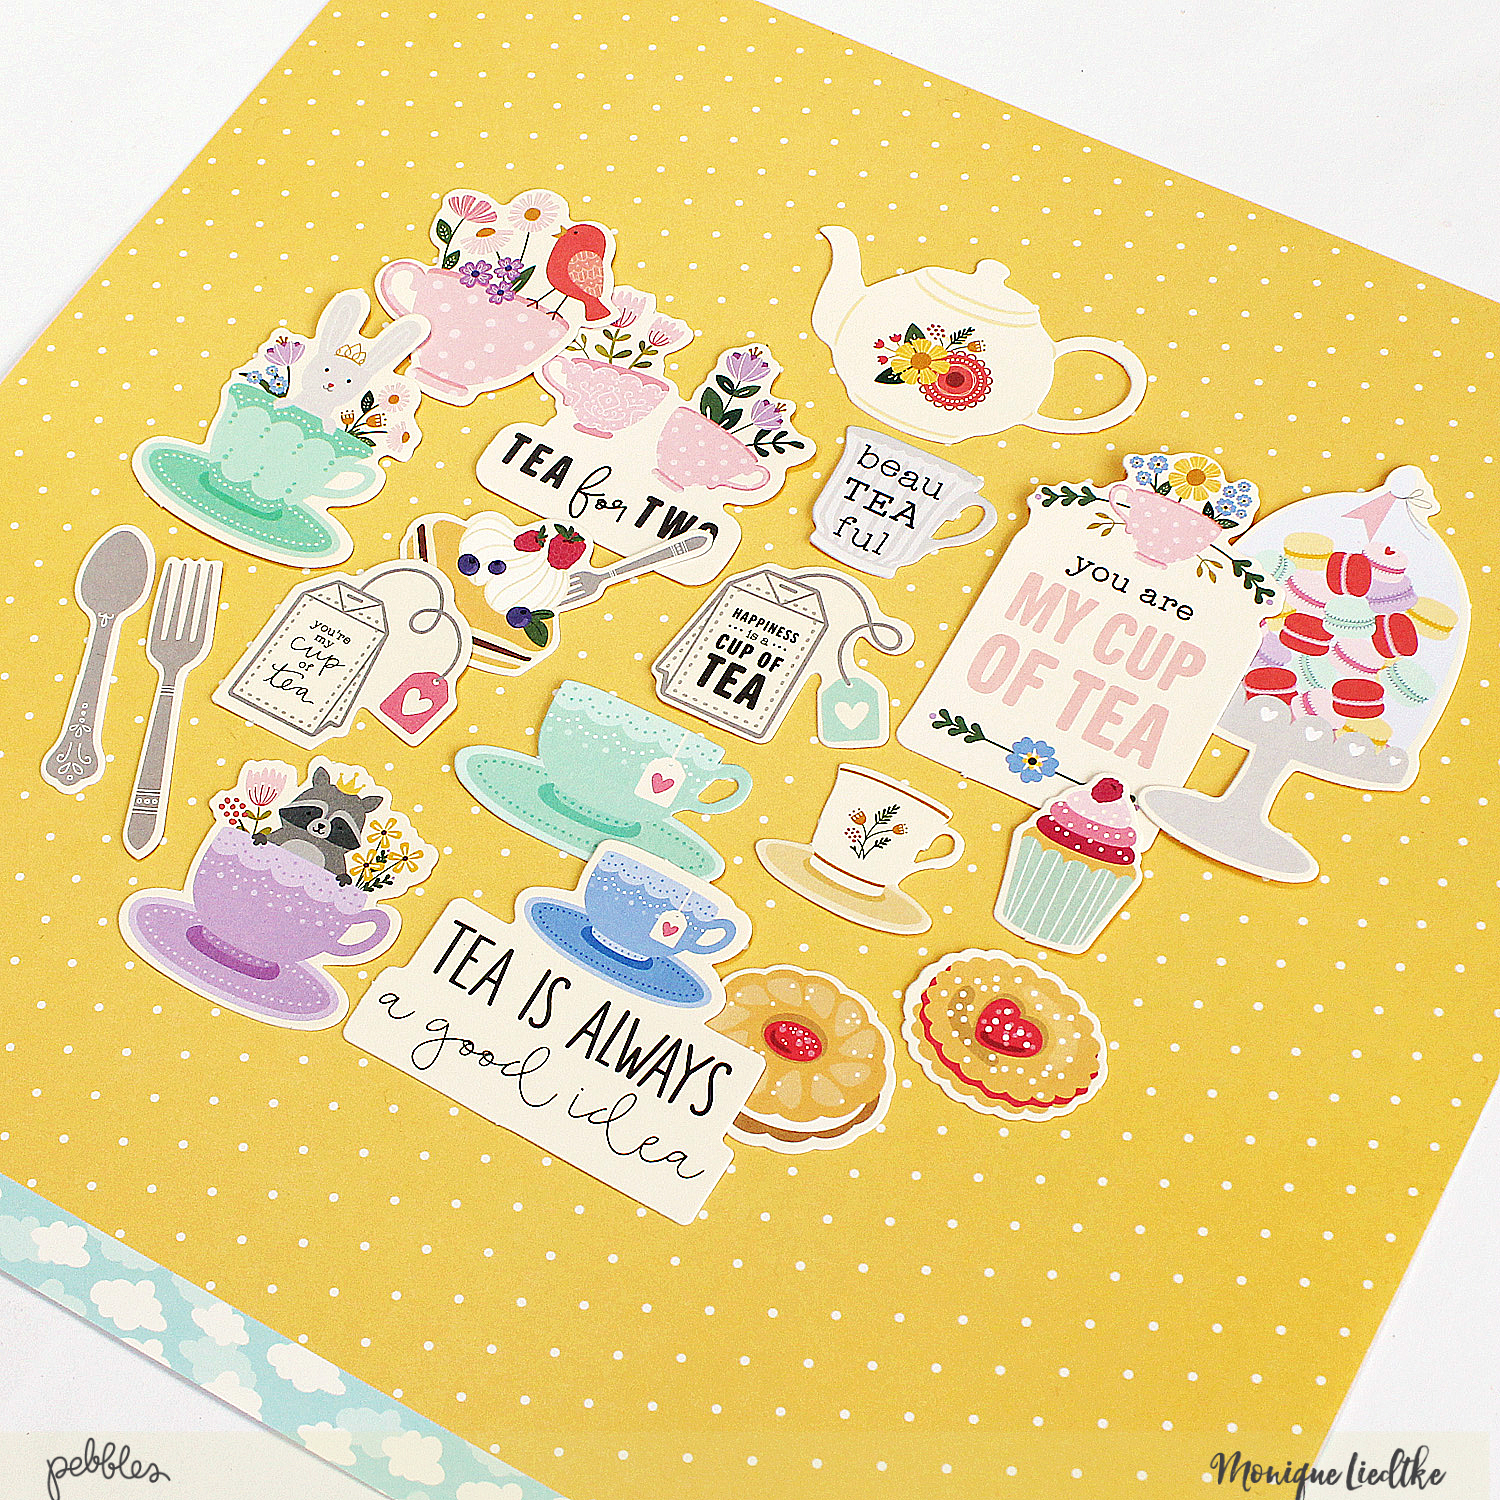 An afternoon tea kind of layout made by @MoniqueLiedtke using the #Tealightful collection from @PebblesInc.